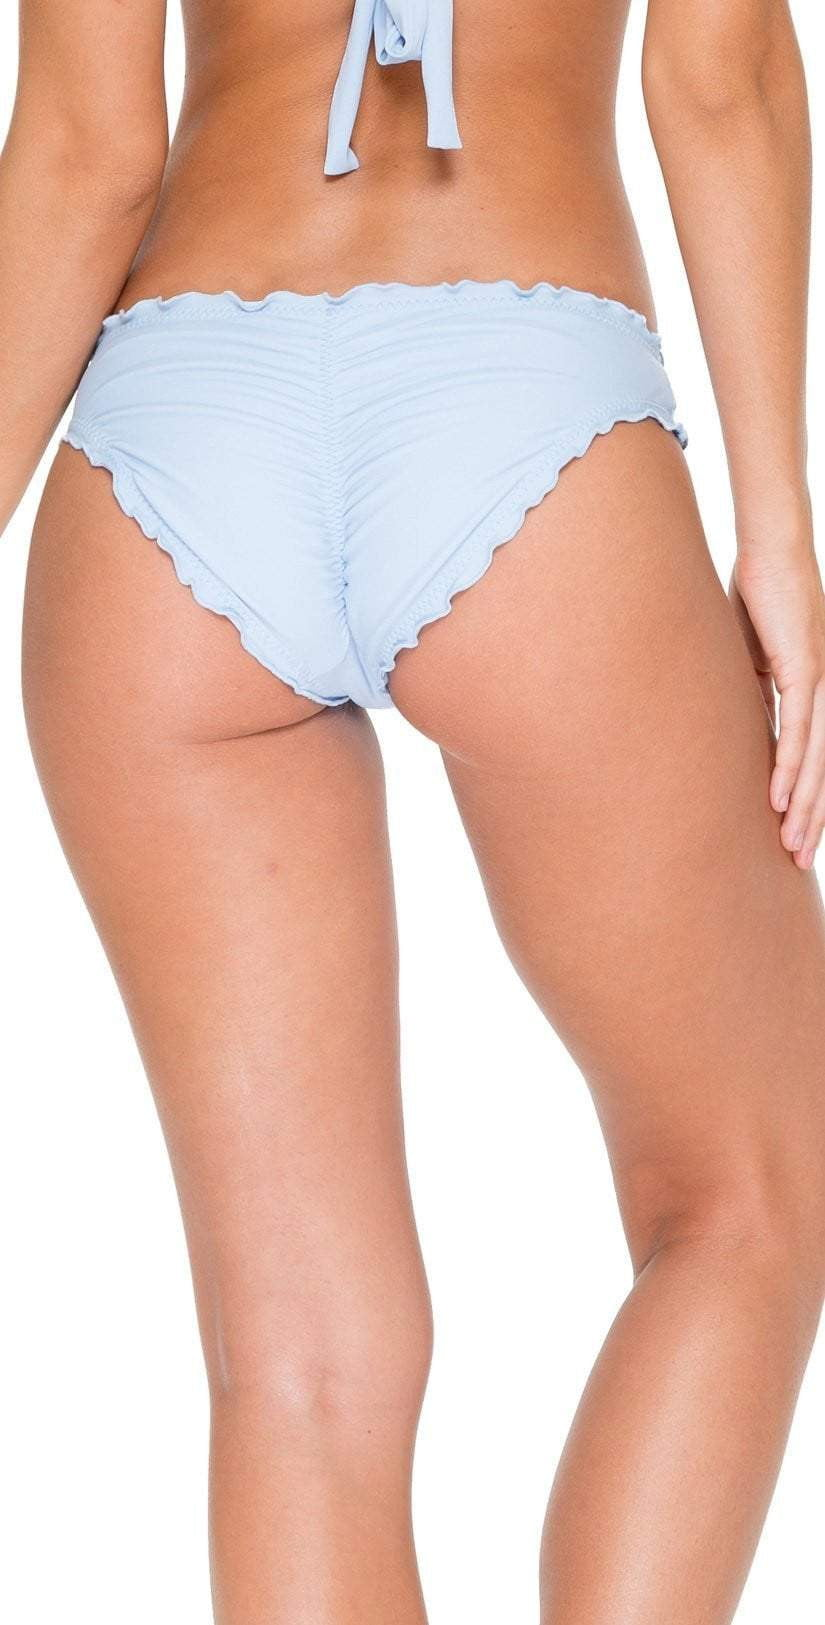 Luli Fama Cosita Buena Full Bottom in Cielo L176521-425: